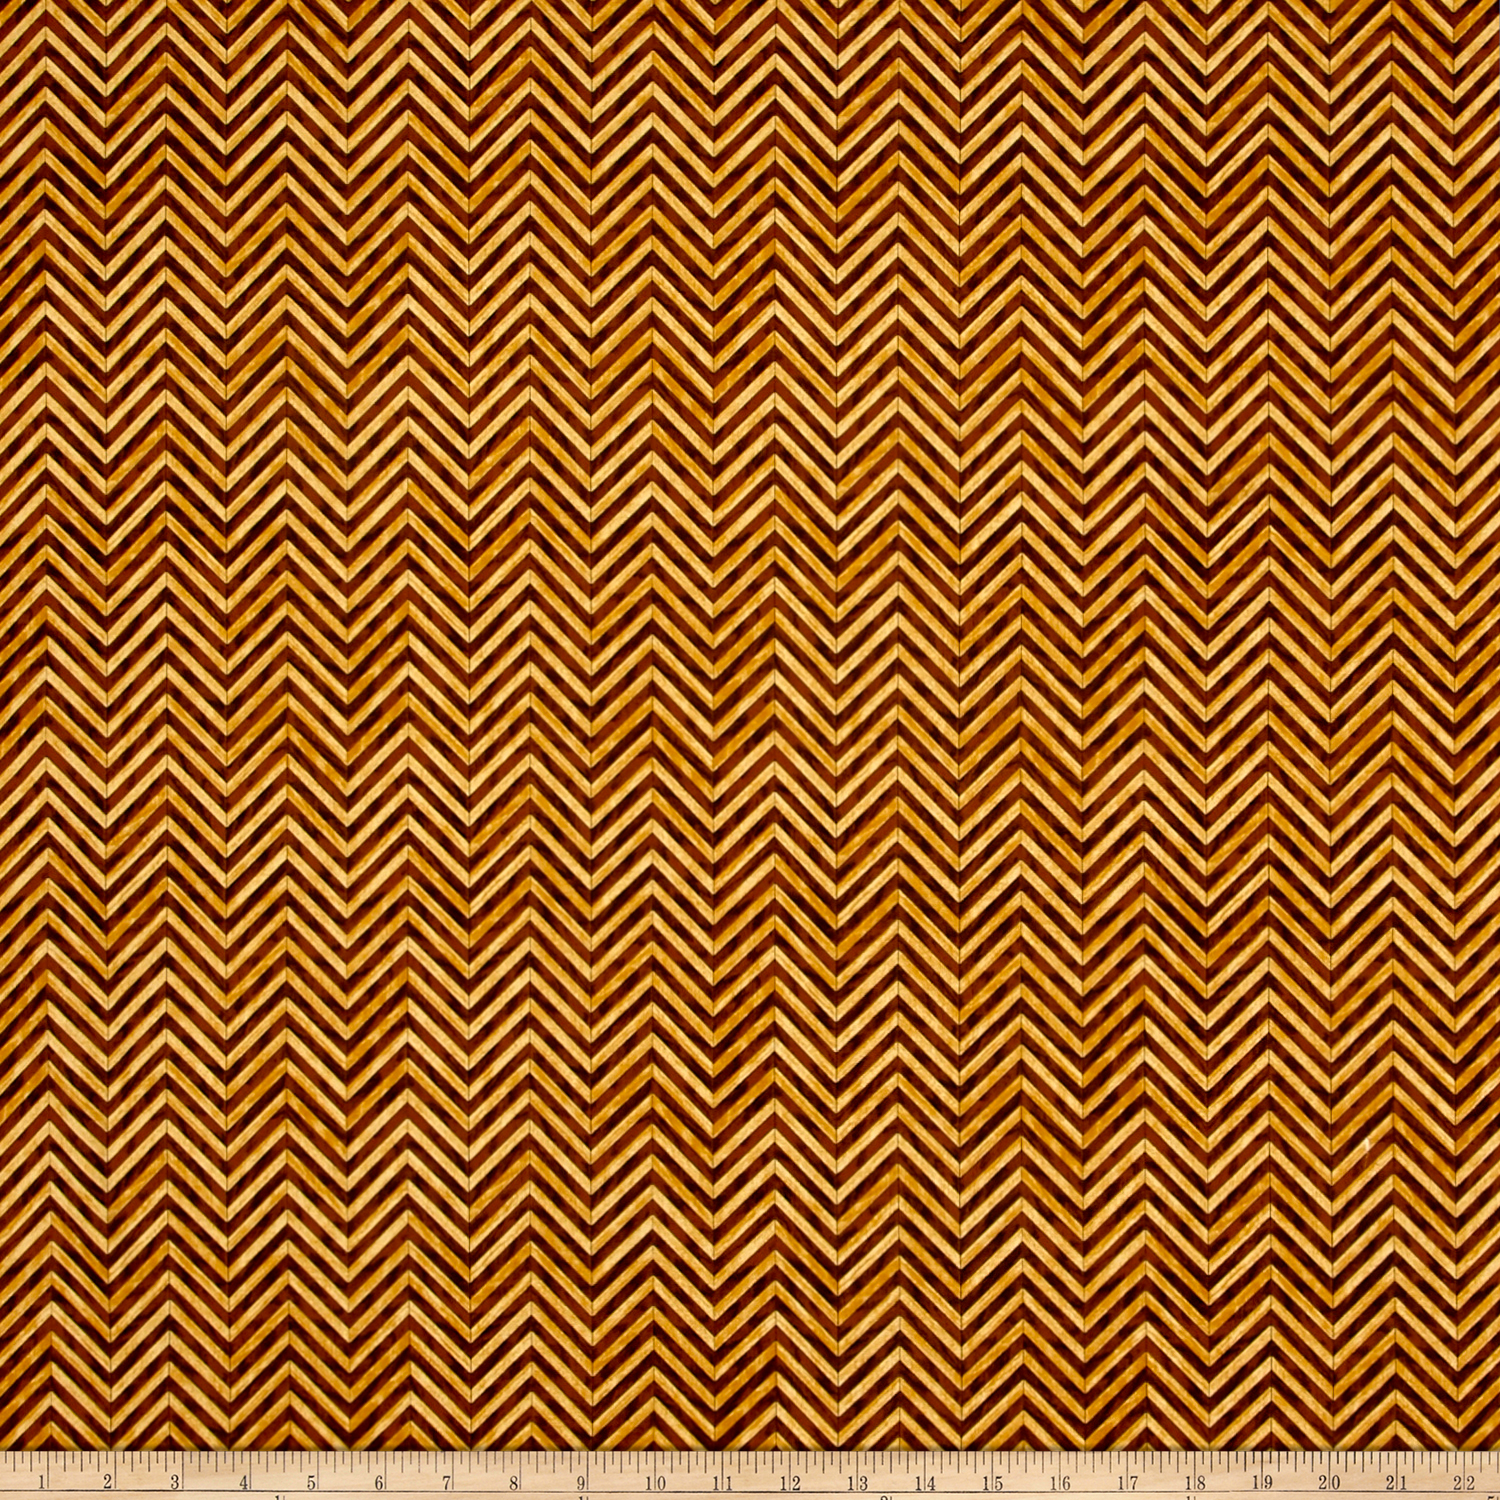 Craftsman Chevron Brown Fabric